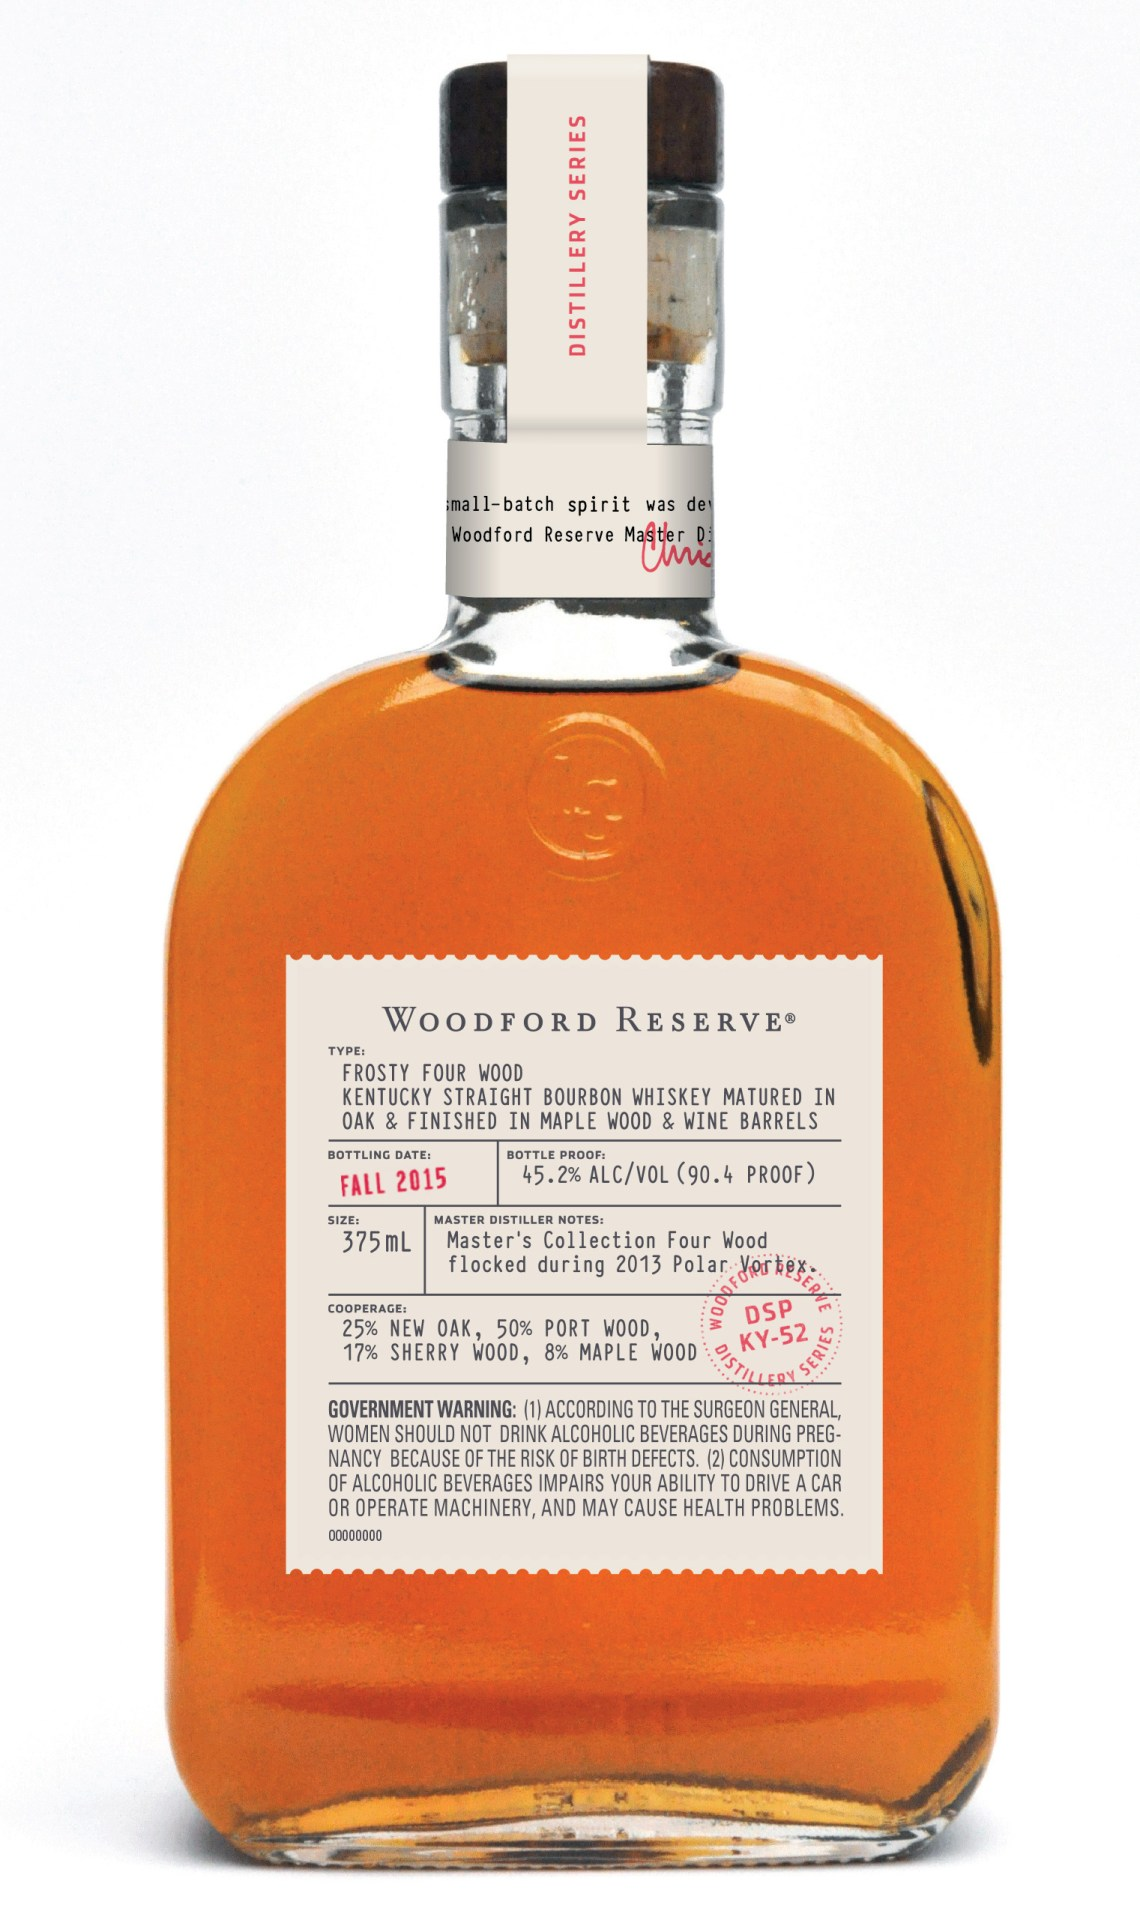 Woodford Reserve Distillery Series – Frosty Four Wood